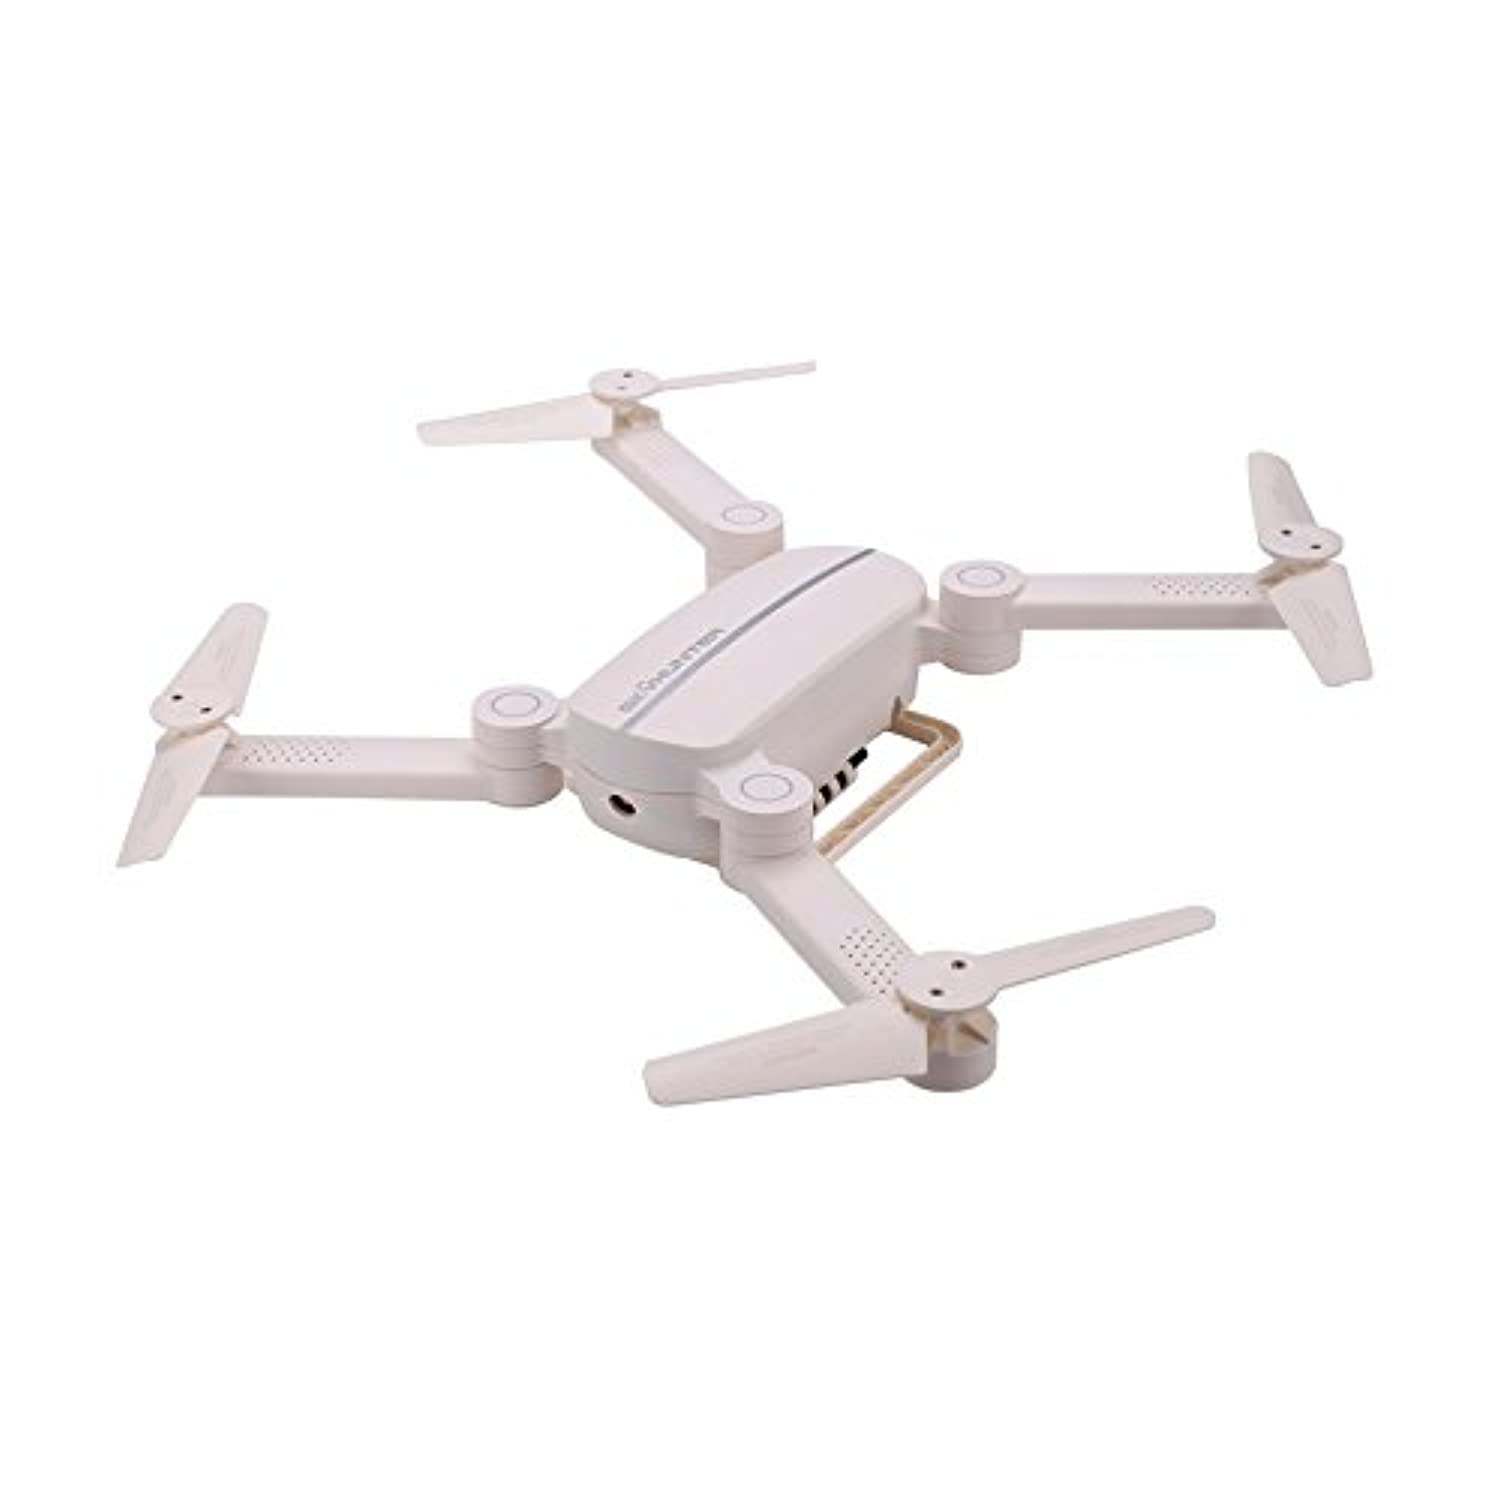 MingXiao 360度ワイヤレスリモコン折りたたみRCドローン2.4GHzの折りたたみリモートコントロールQuadcopter 3Dフリップ特殊効果、平面のおもちゃ